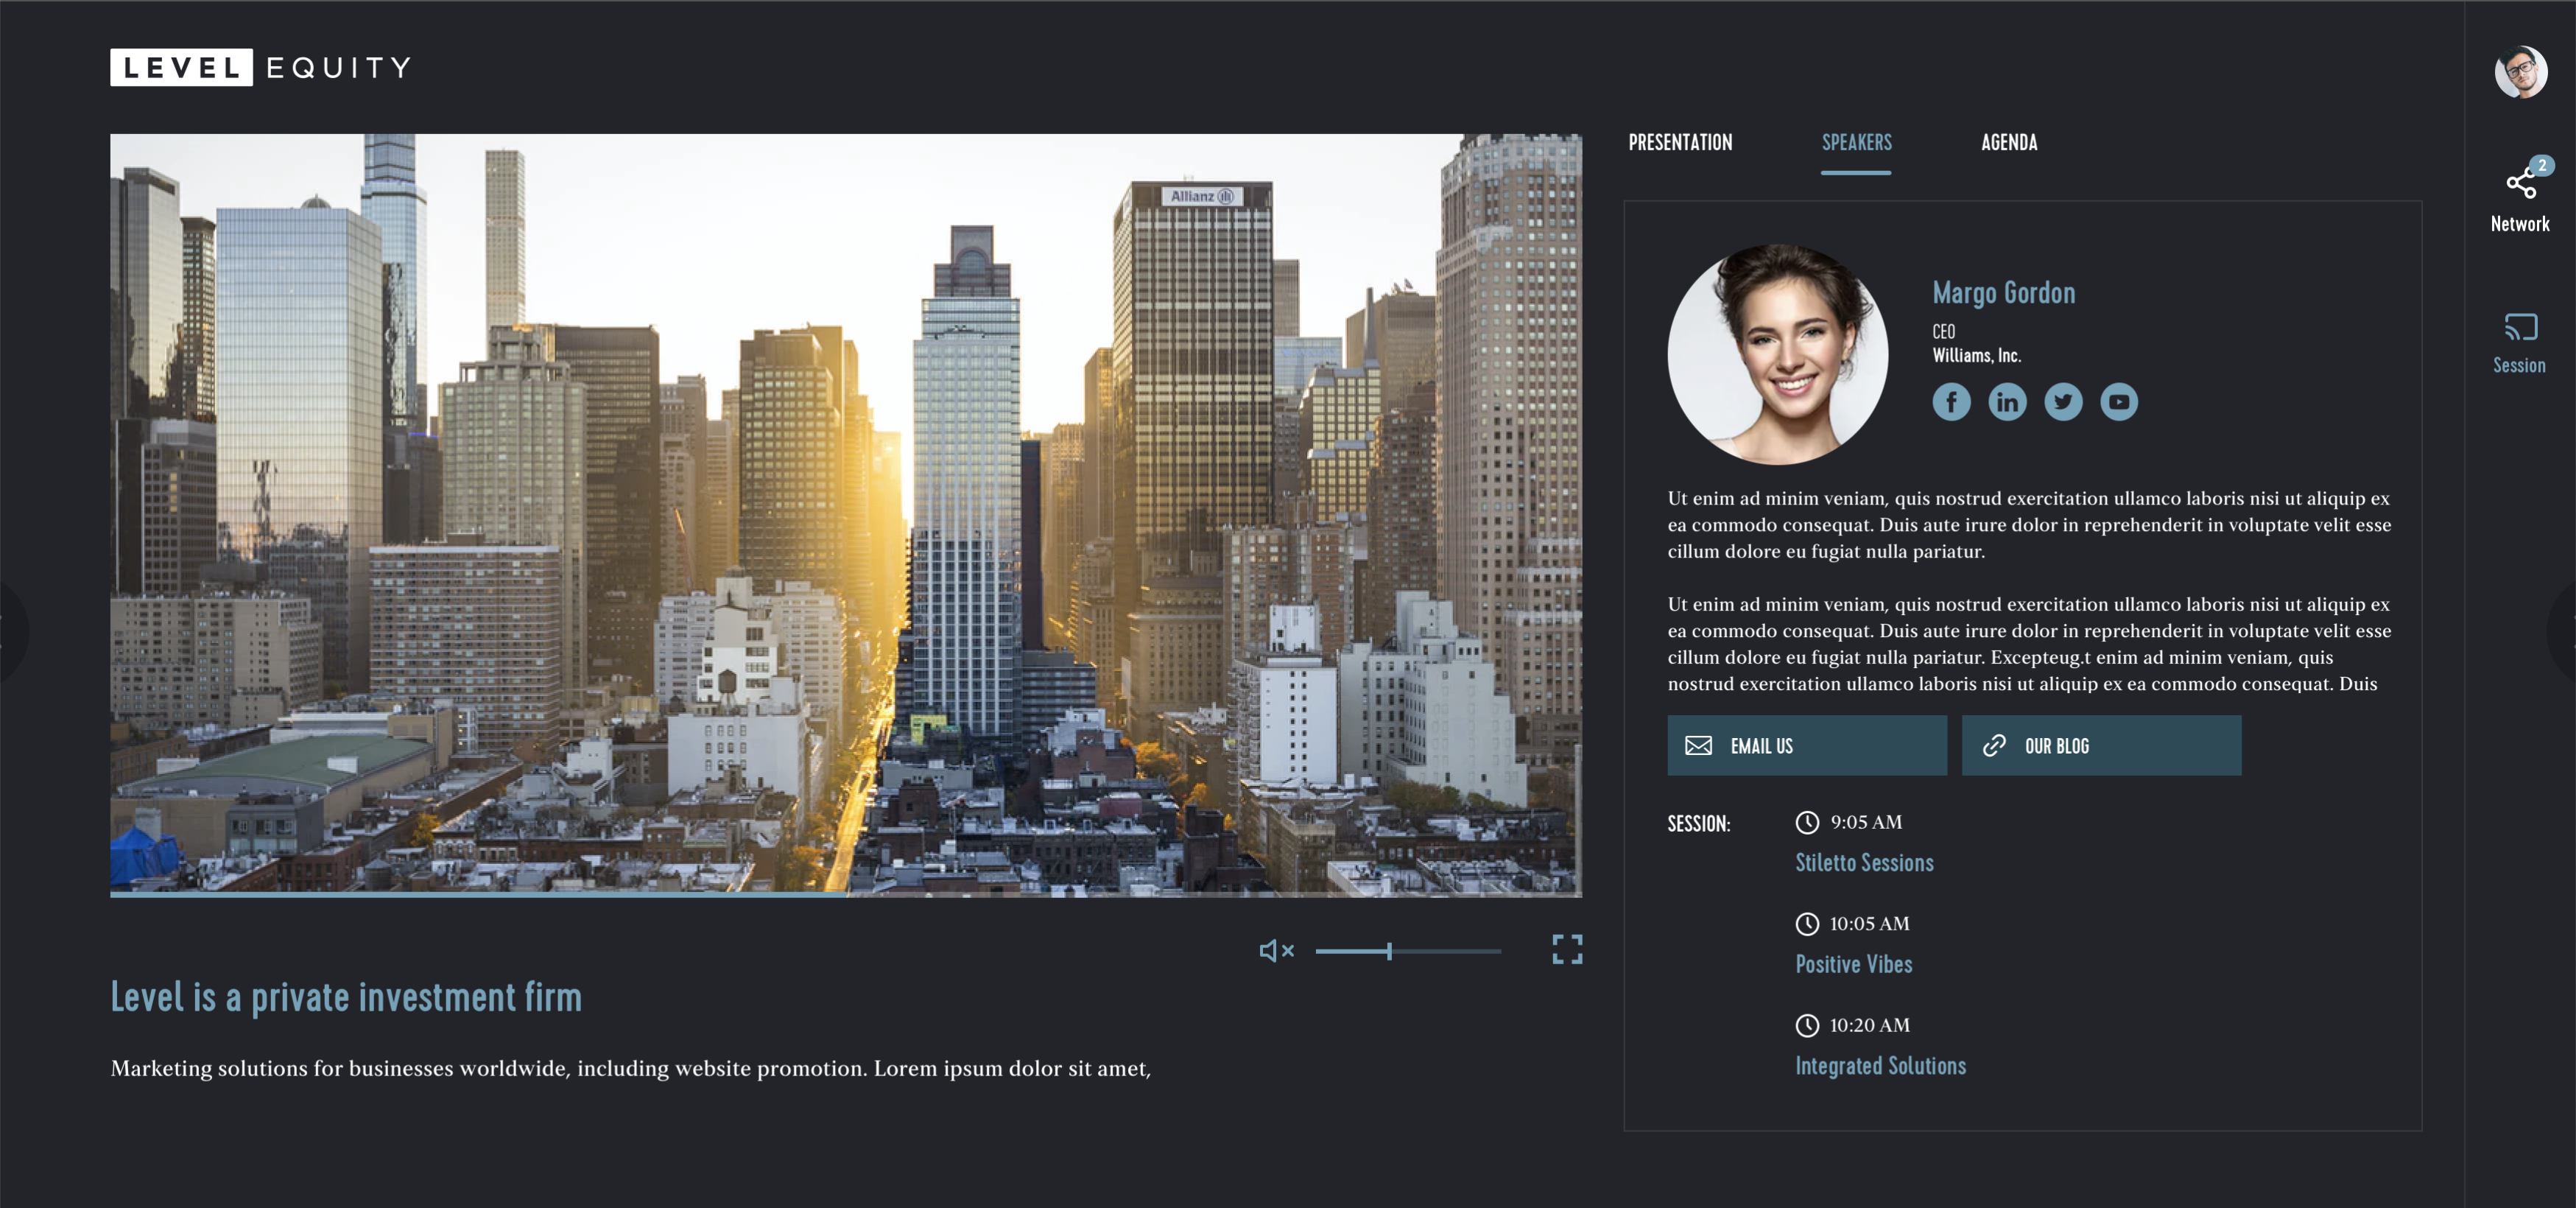 example of a simple Main Session page design, with Speaker & Agenda widgets.